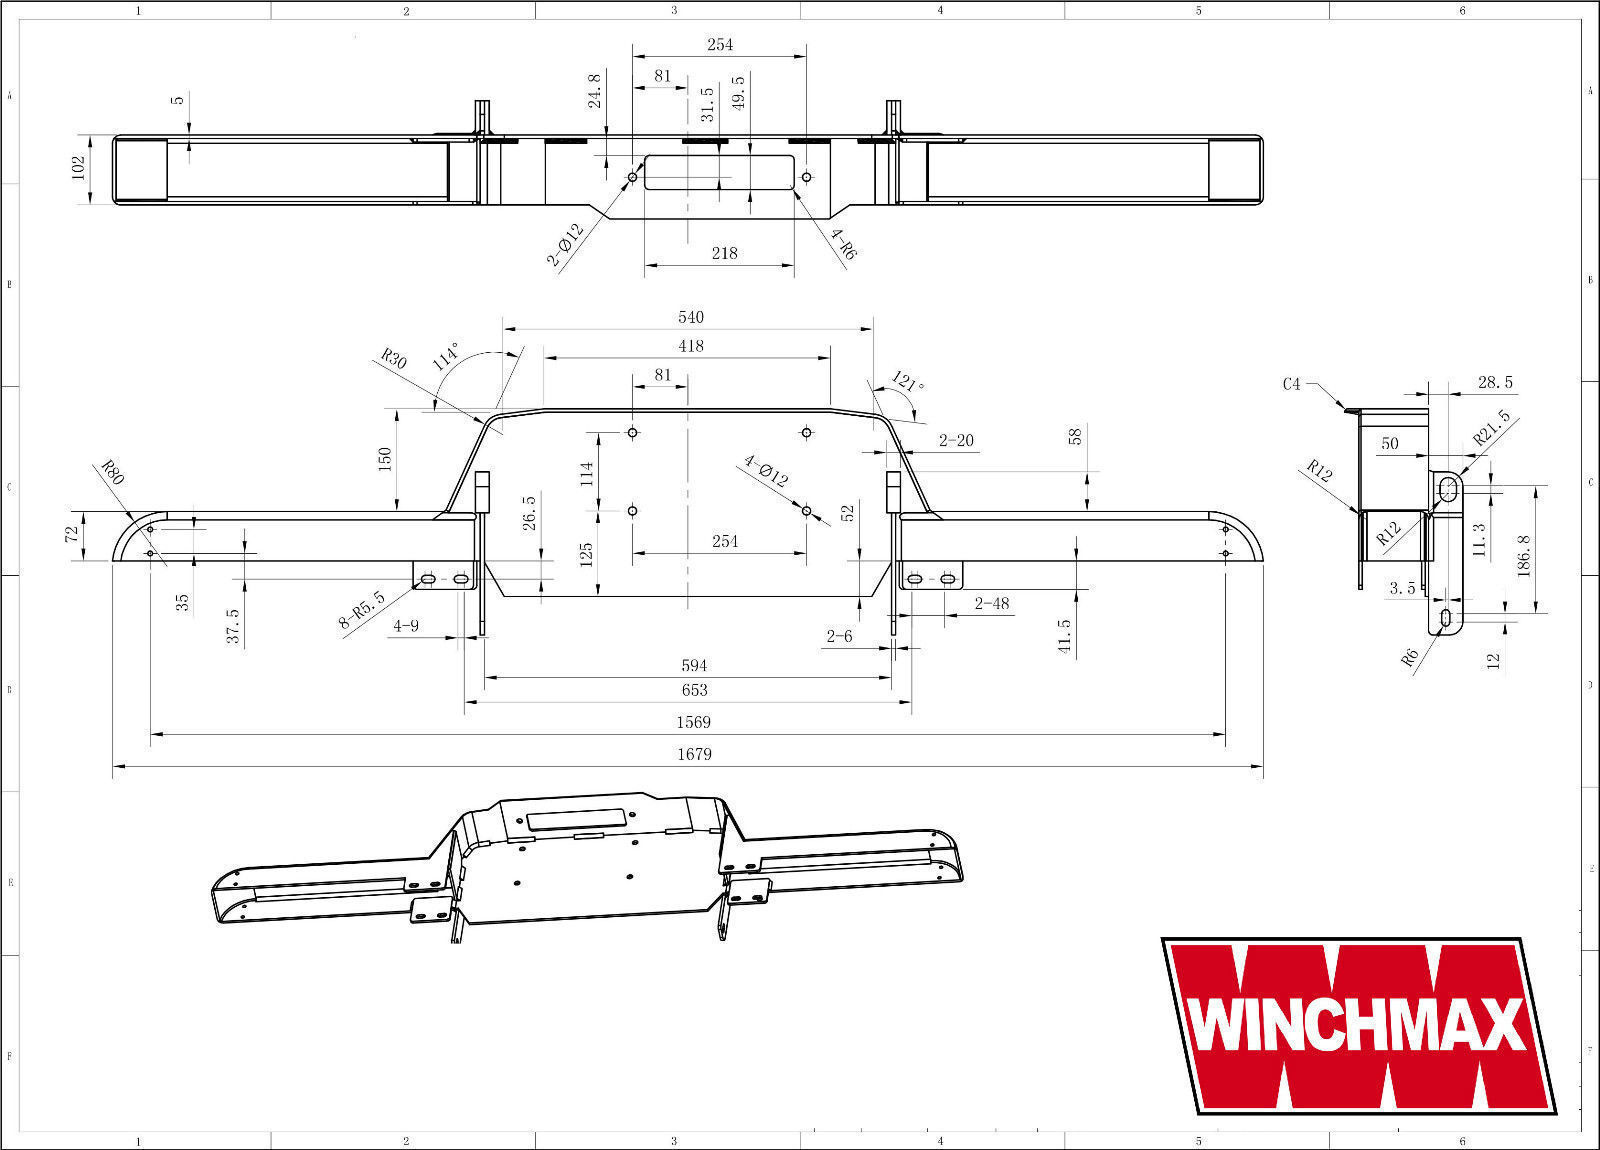 Land Rover Defender Winch Bumper Vpldp0105 Pattern Fits With Or Wiring Diagram 1989 The Guarantee Excludes Wire Rope Damage Caused By Misuse Failure To Follow Instructions Submersion Provided Is Rtb Return